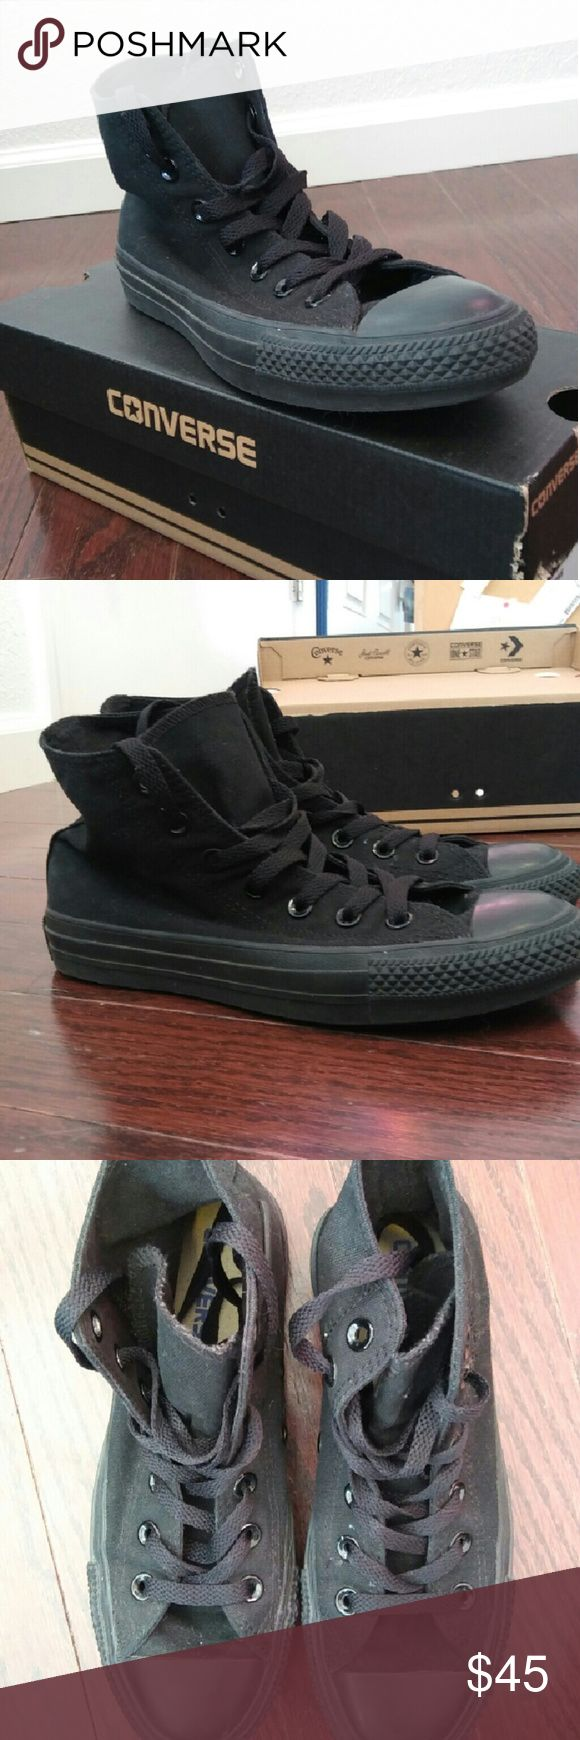 Converse all black high tops Converse all black high tops ~comes with box~ only worn twice~ in great condition Converse Shoes